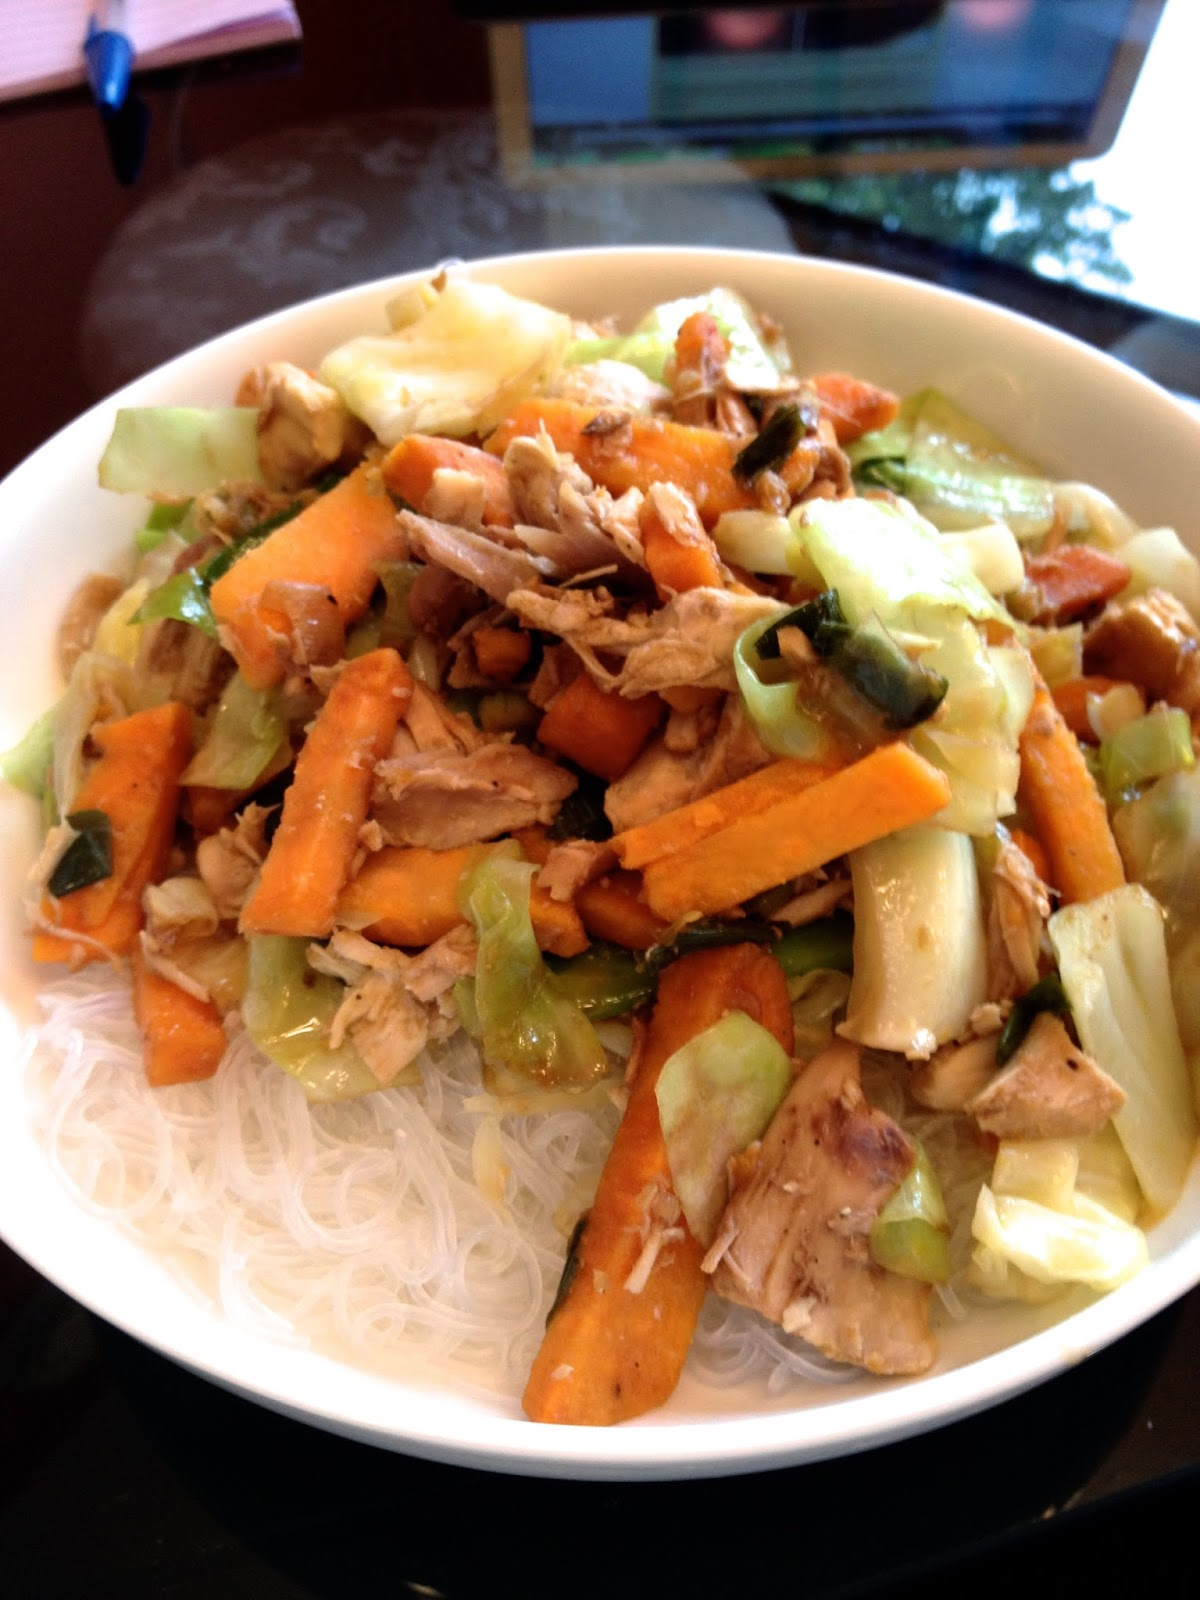 Chicken Stir-Fry With Yams